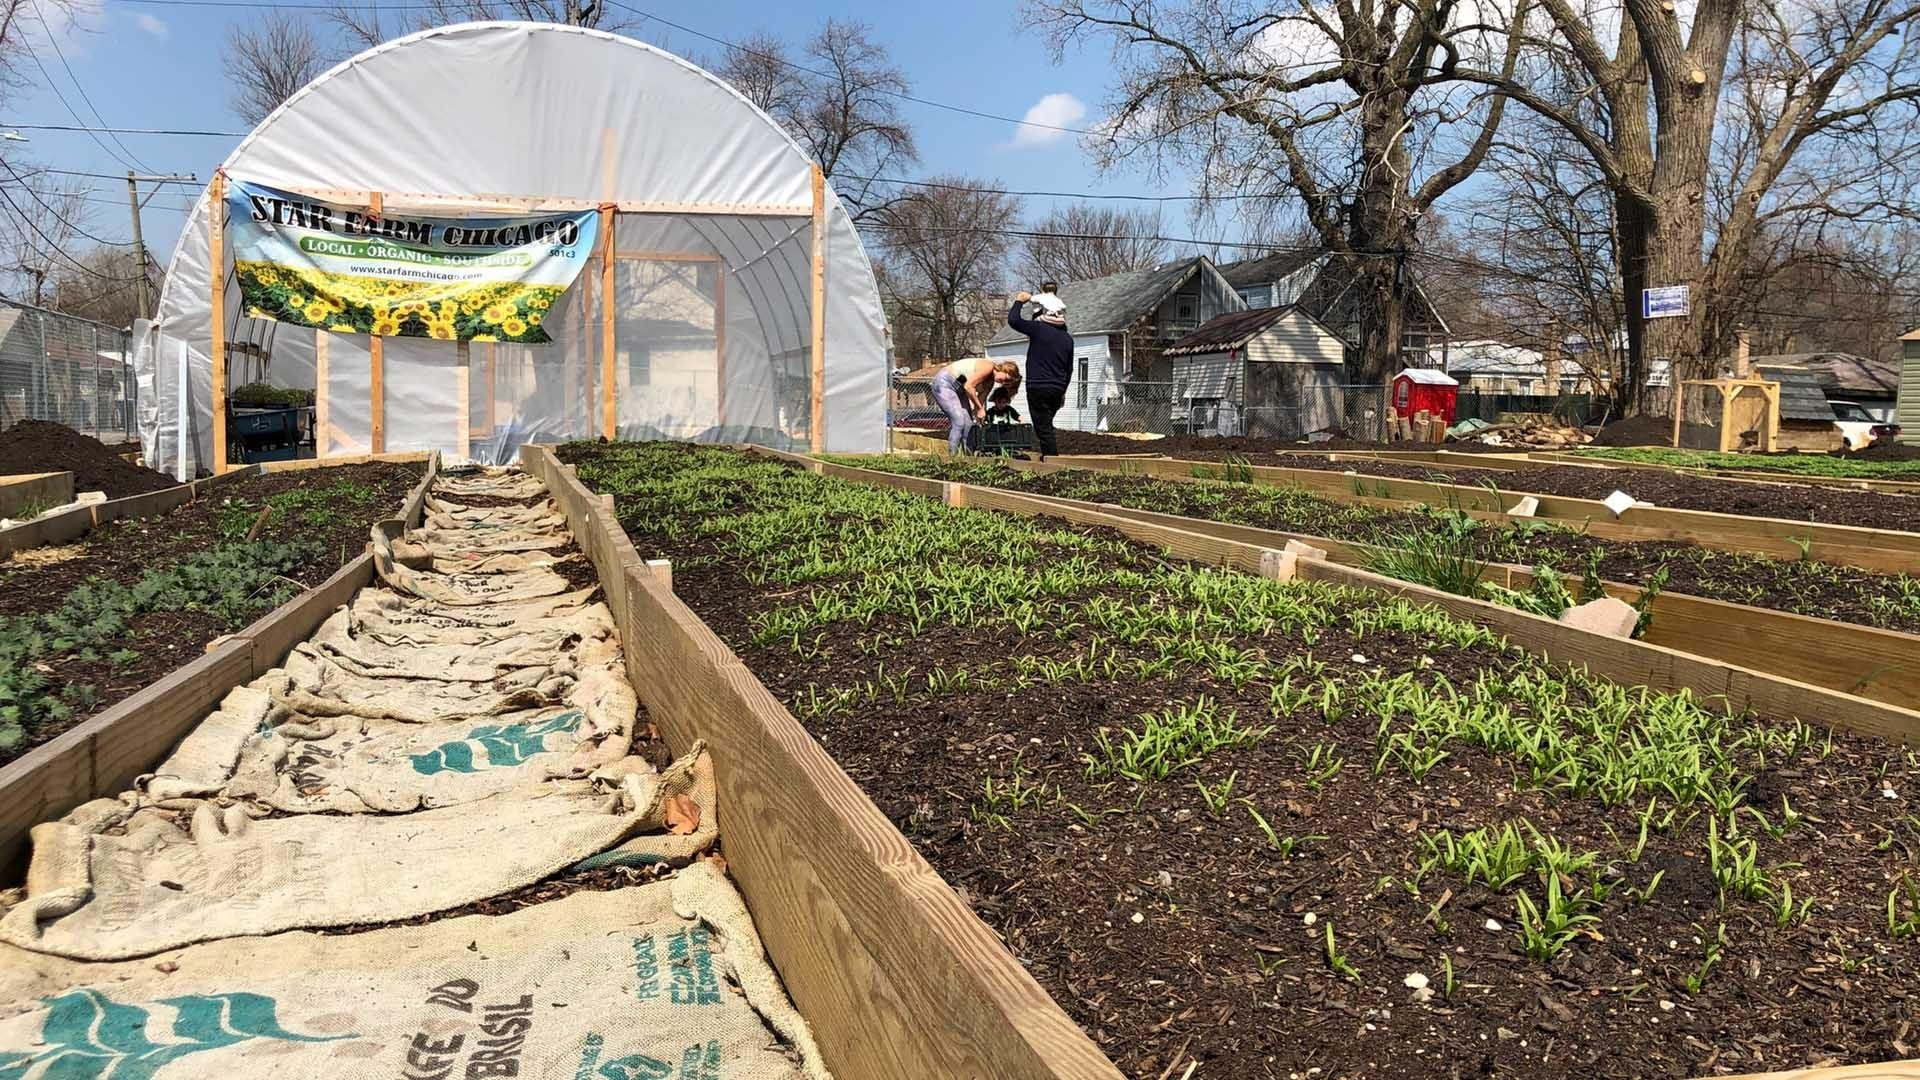 Tiny Star Farm Aims To Transform The Neighborhood That Meatpacking Built Chicago News Wttw